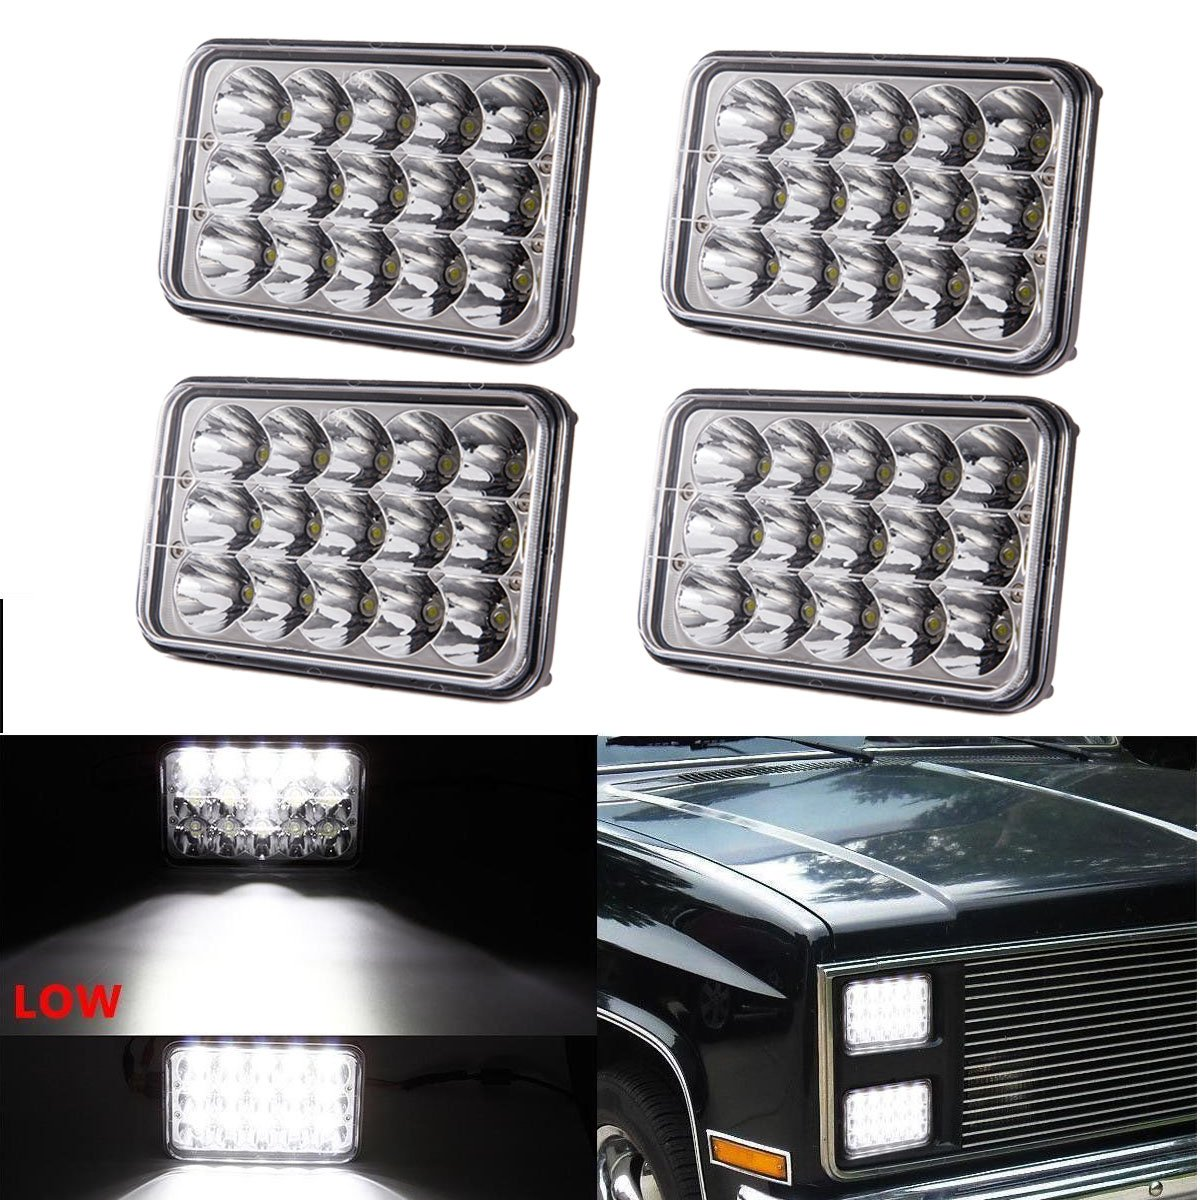 (4pcs) Dot approved 4x6 inch LED Headlights Rectangular Replacement H4651 H4652 H4656 H4666 H6545 for Peterbil Kenworth Freightinger Ford Probe Chevrolet Oldsmobile Cutlass LX-LIGHT